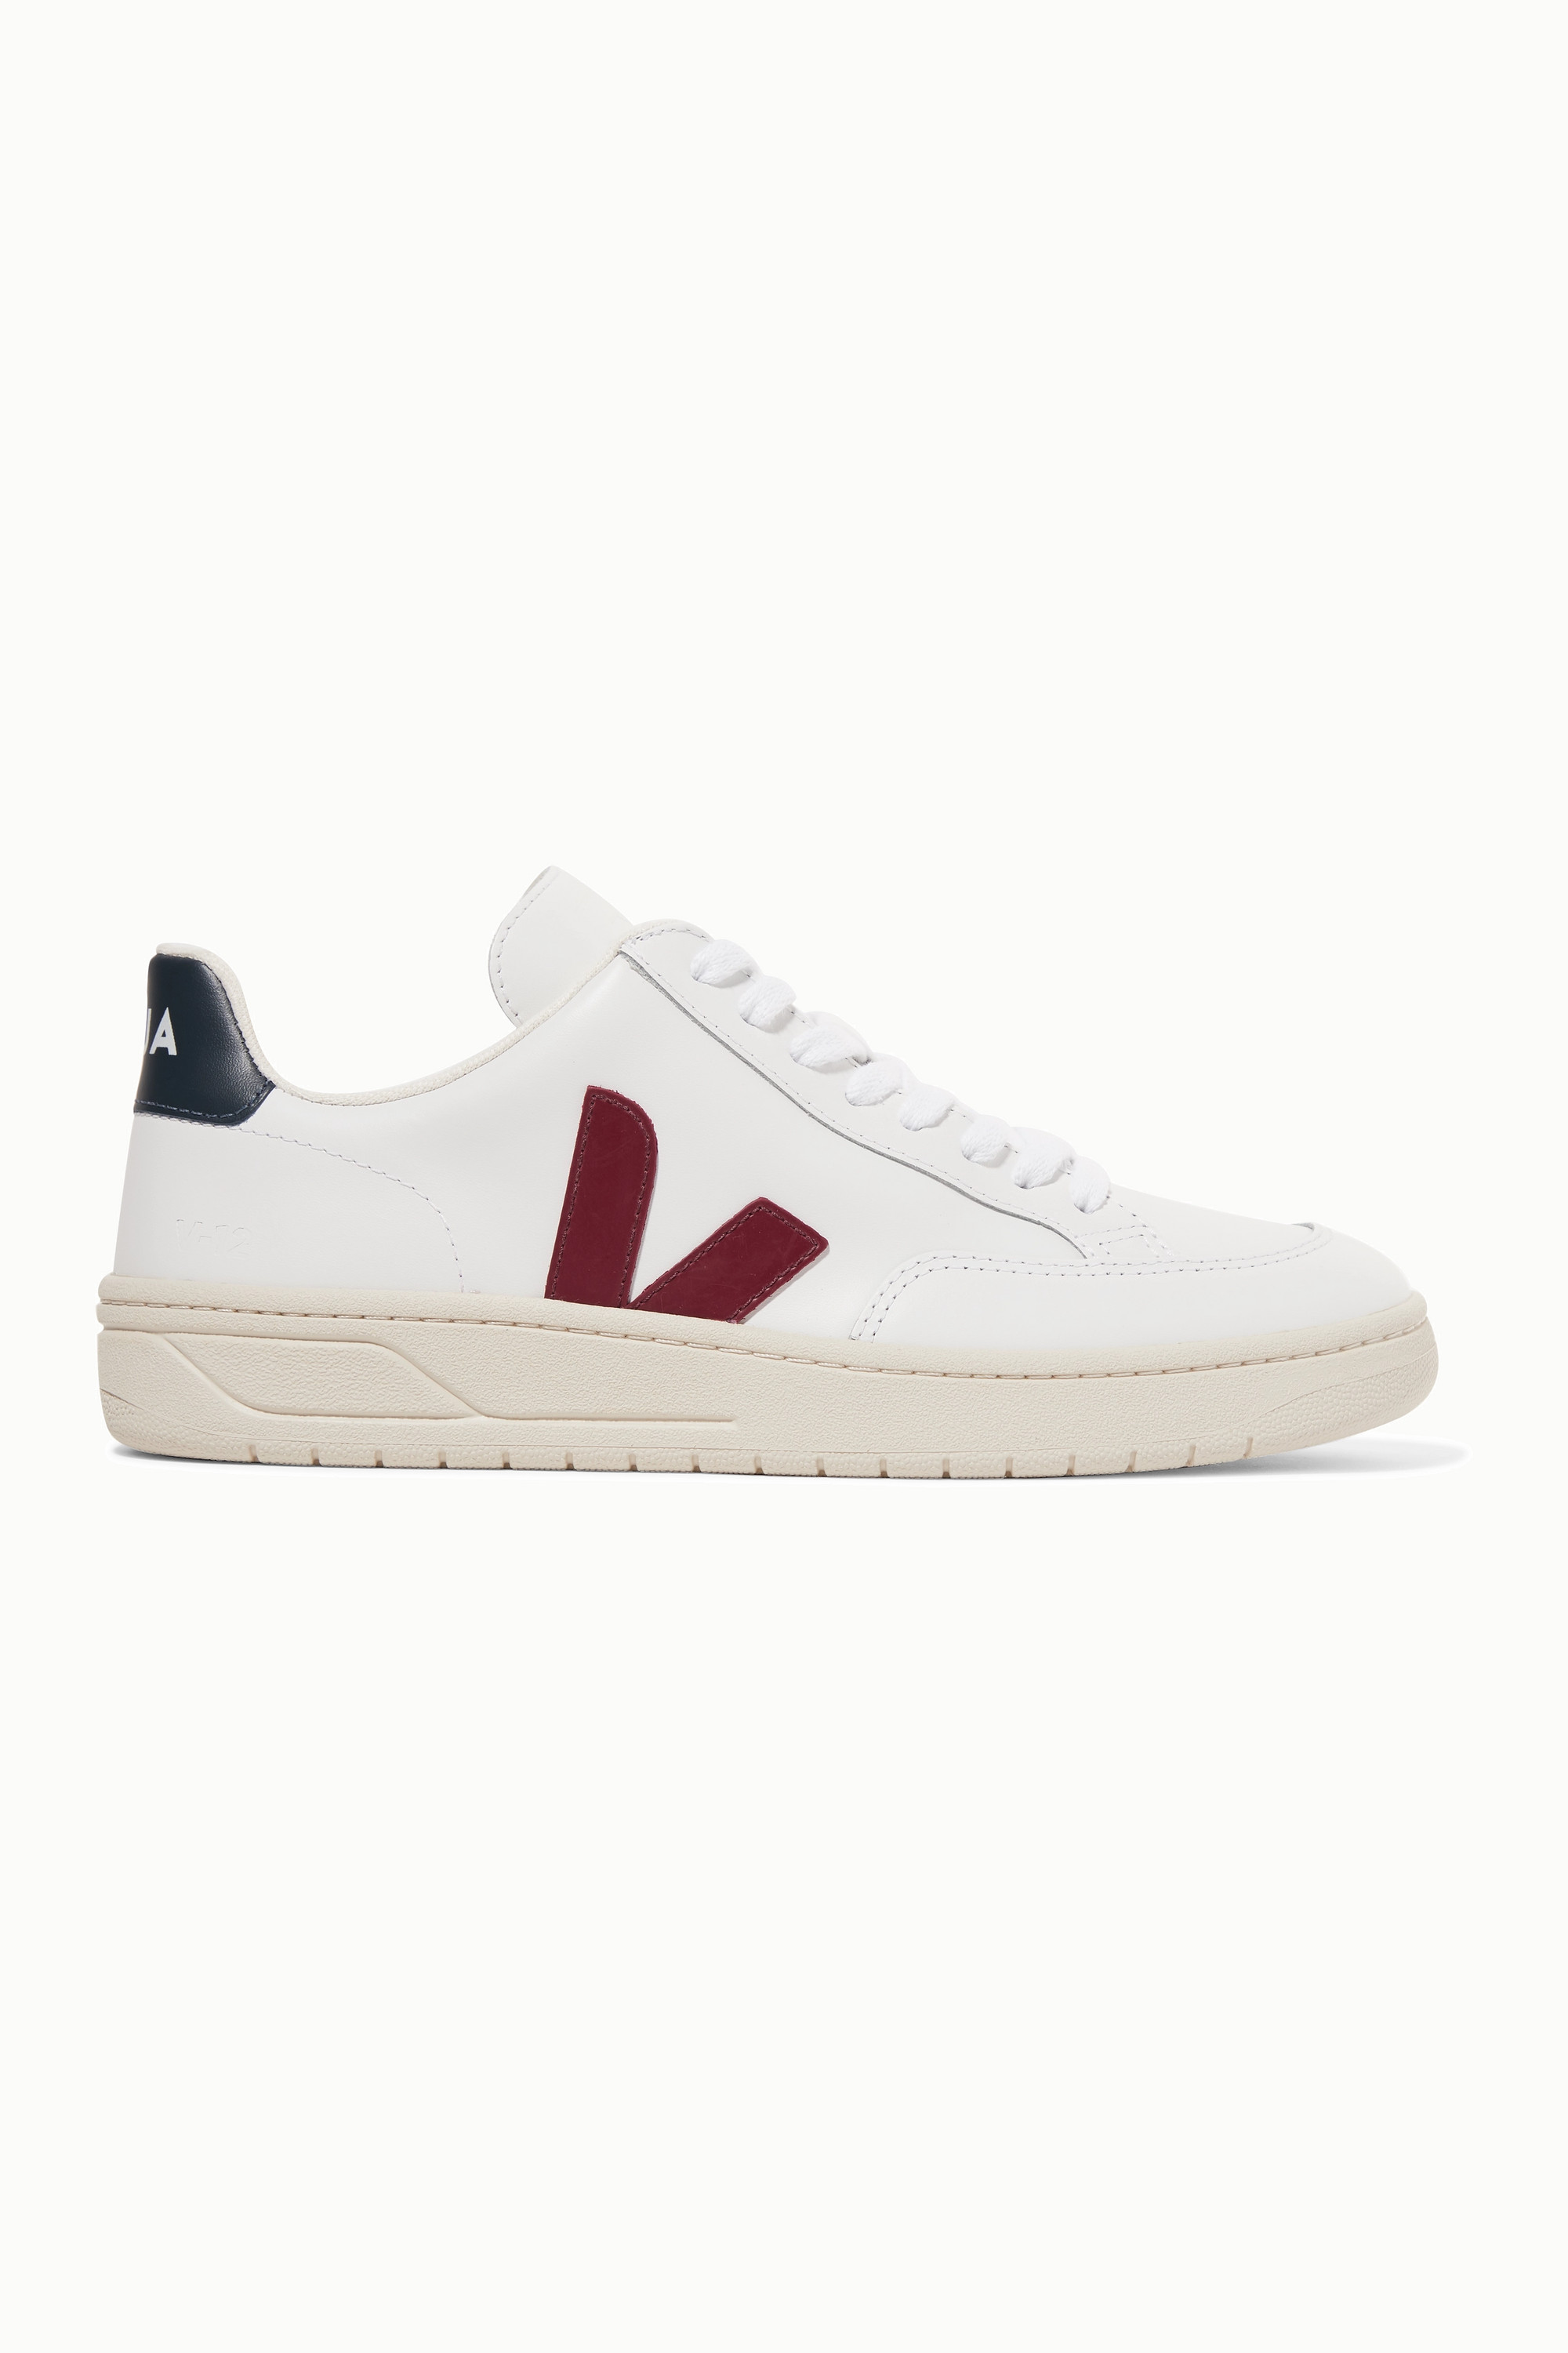 Veja + NET SUSTAIN V-12 leather sneakers